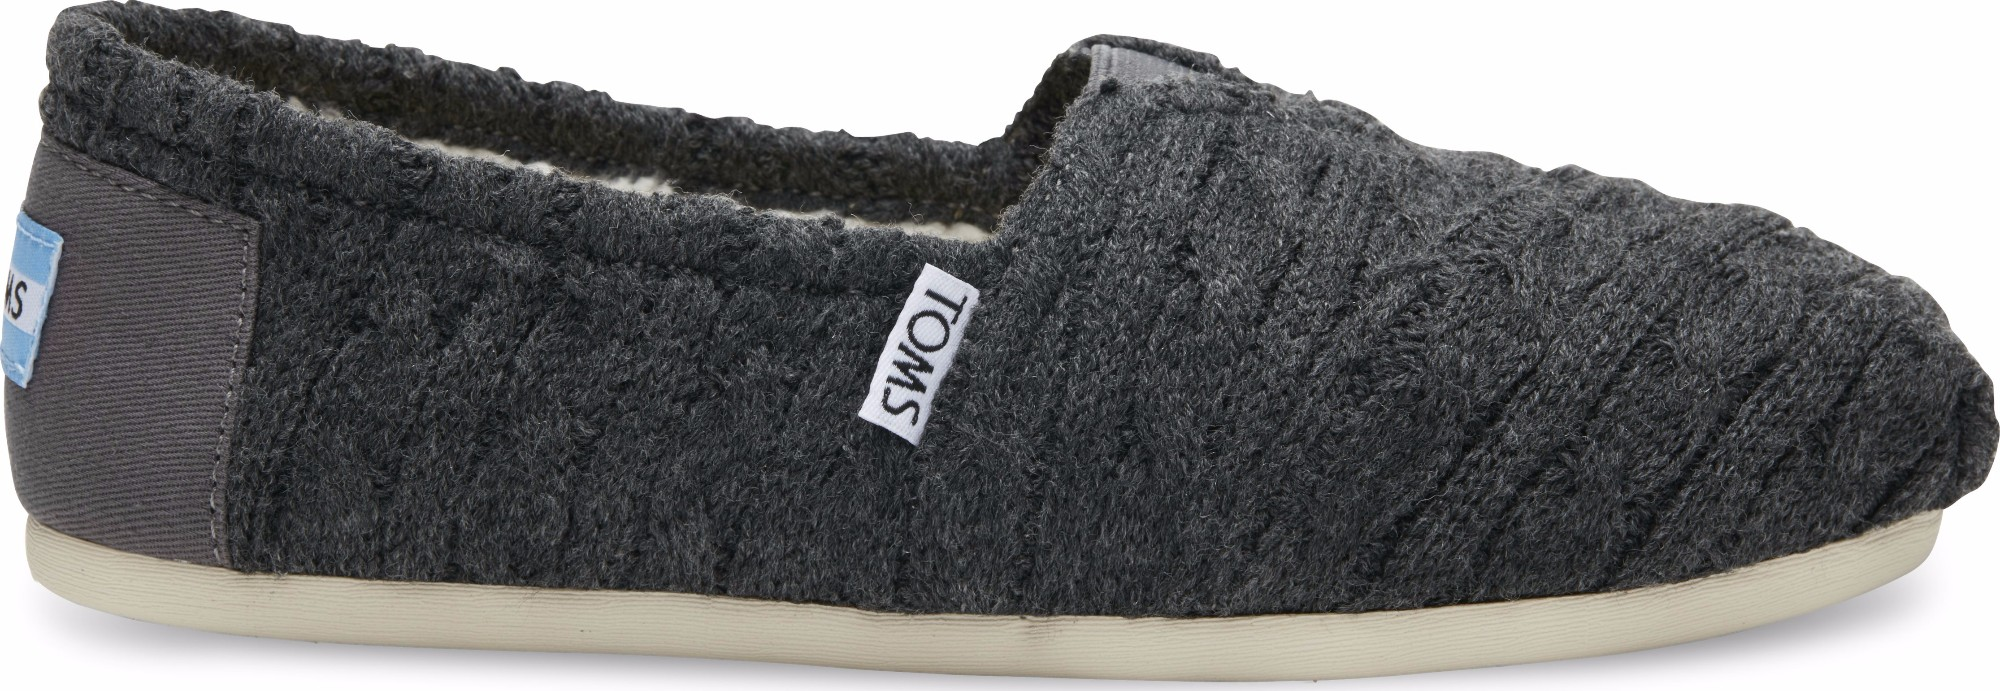 TOMS Cable Knit Shearling Women's Alpargata Forged Iron Grey 36,5